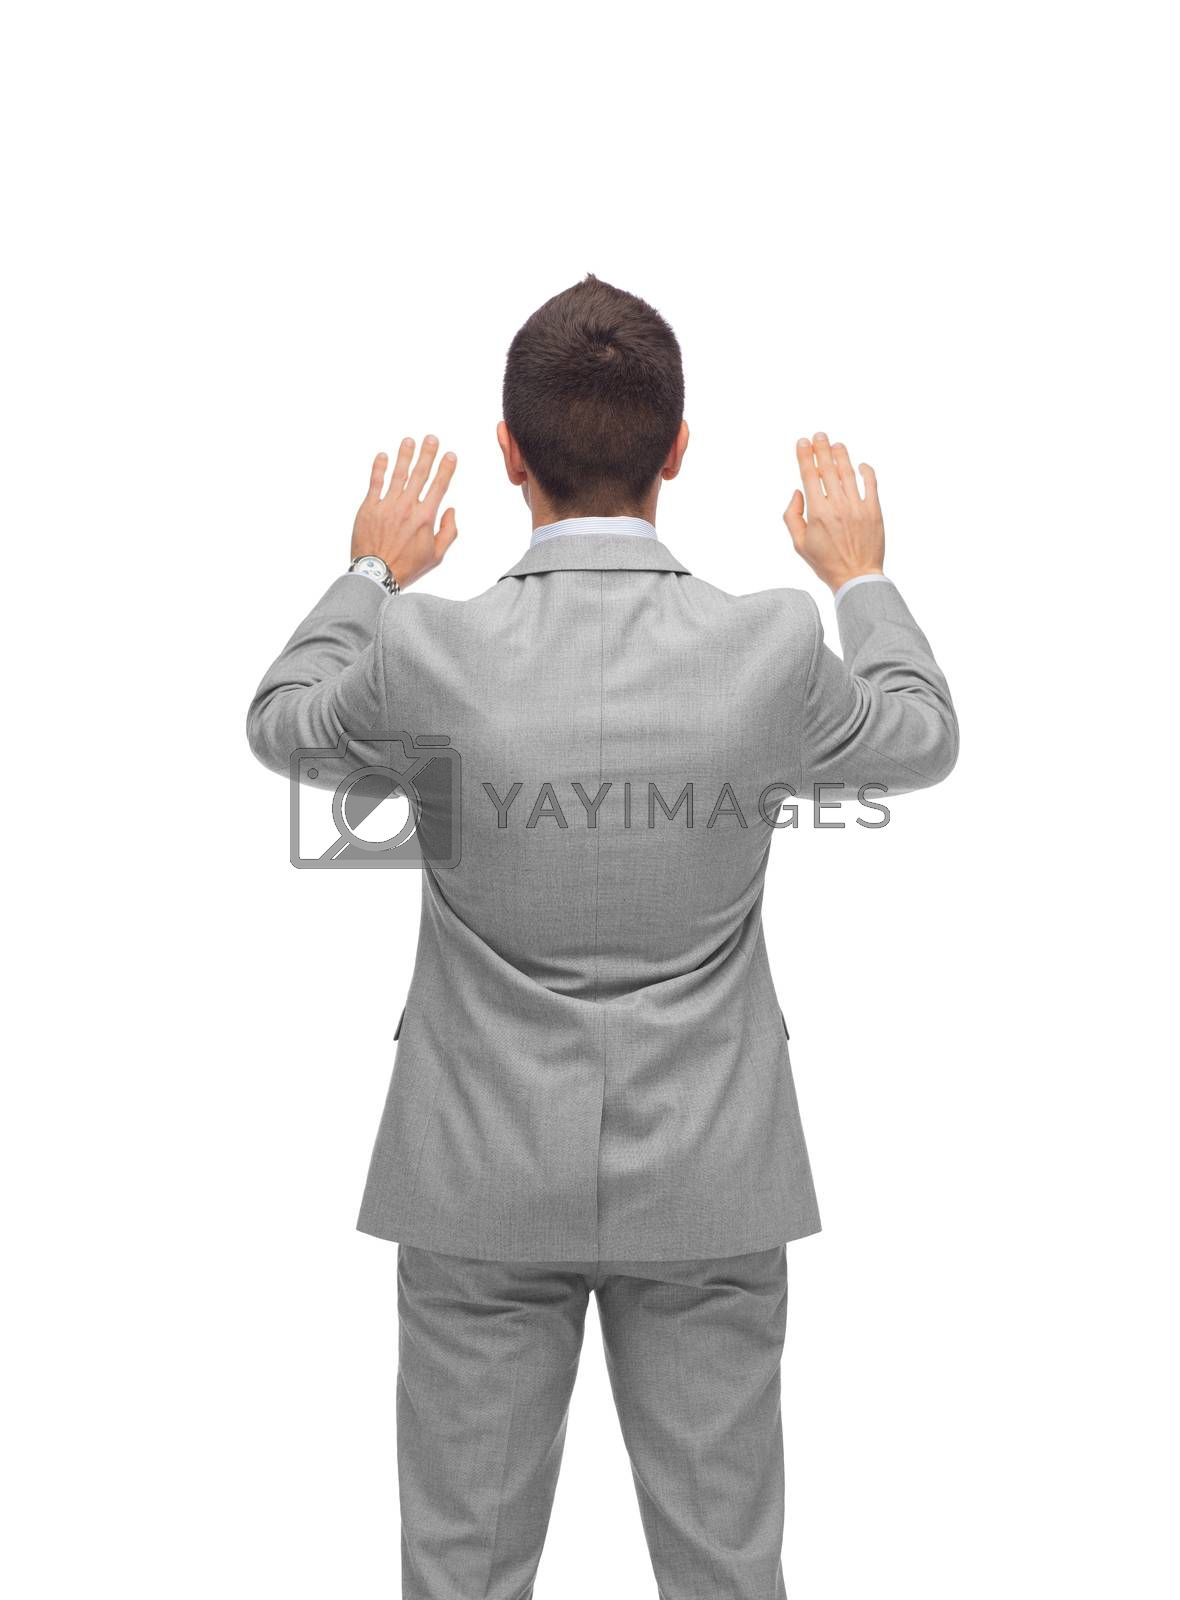 business, people, advertisement and office concept - businessman touching something imaginary from back